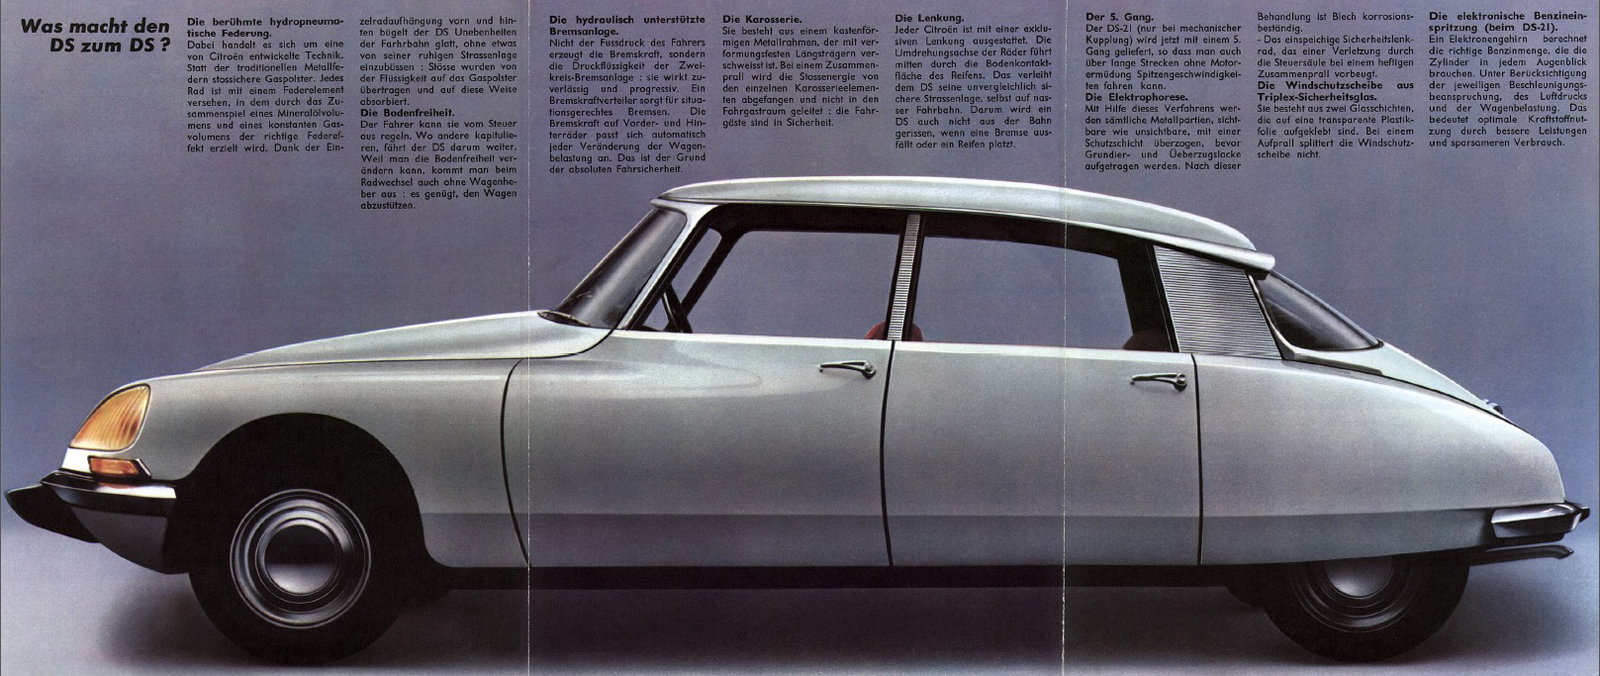 Index2 furthermore 7182079965 besides Toyota Celica furthermore 124 moreover Challenger. on the new cars of 1970